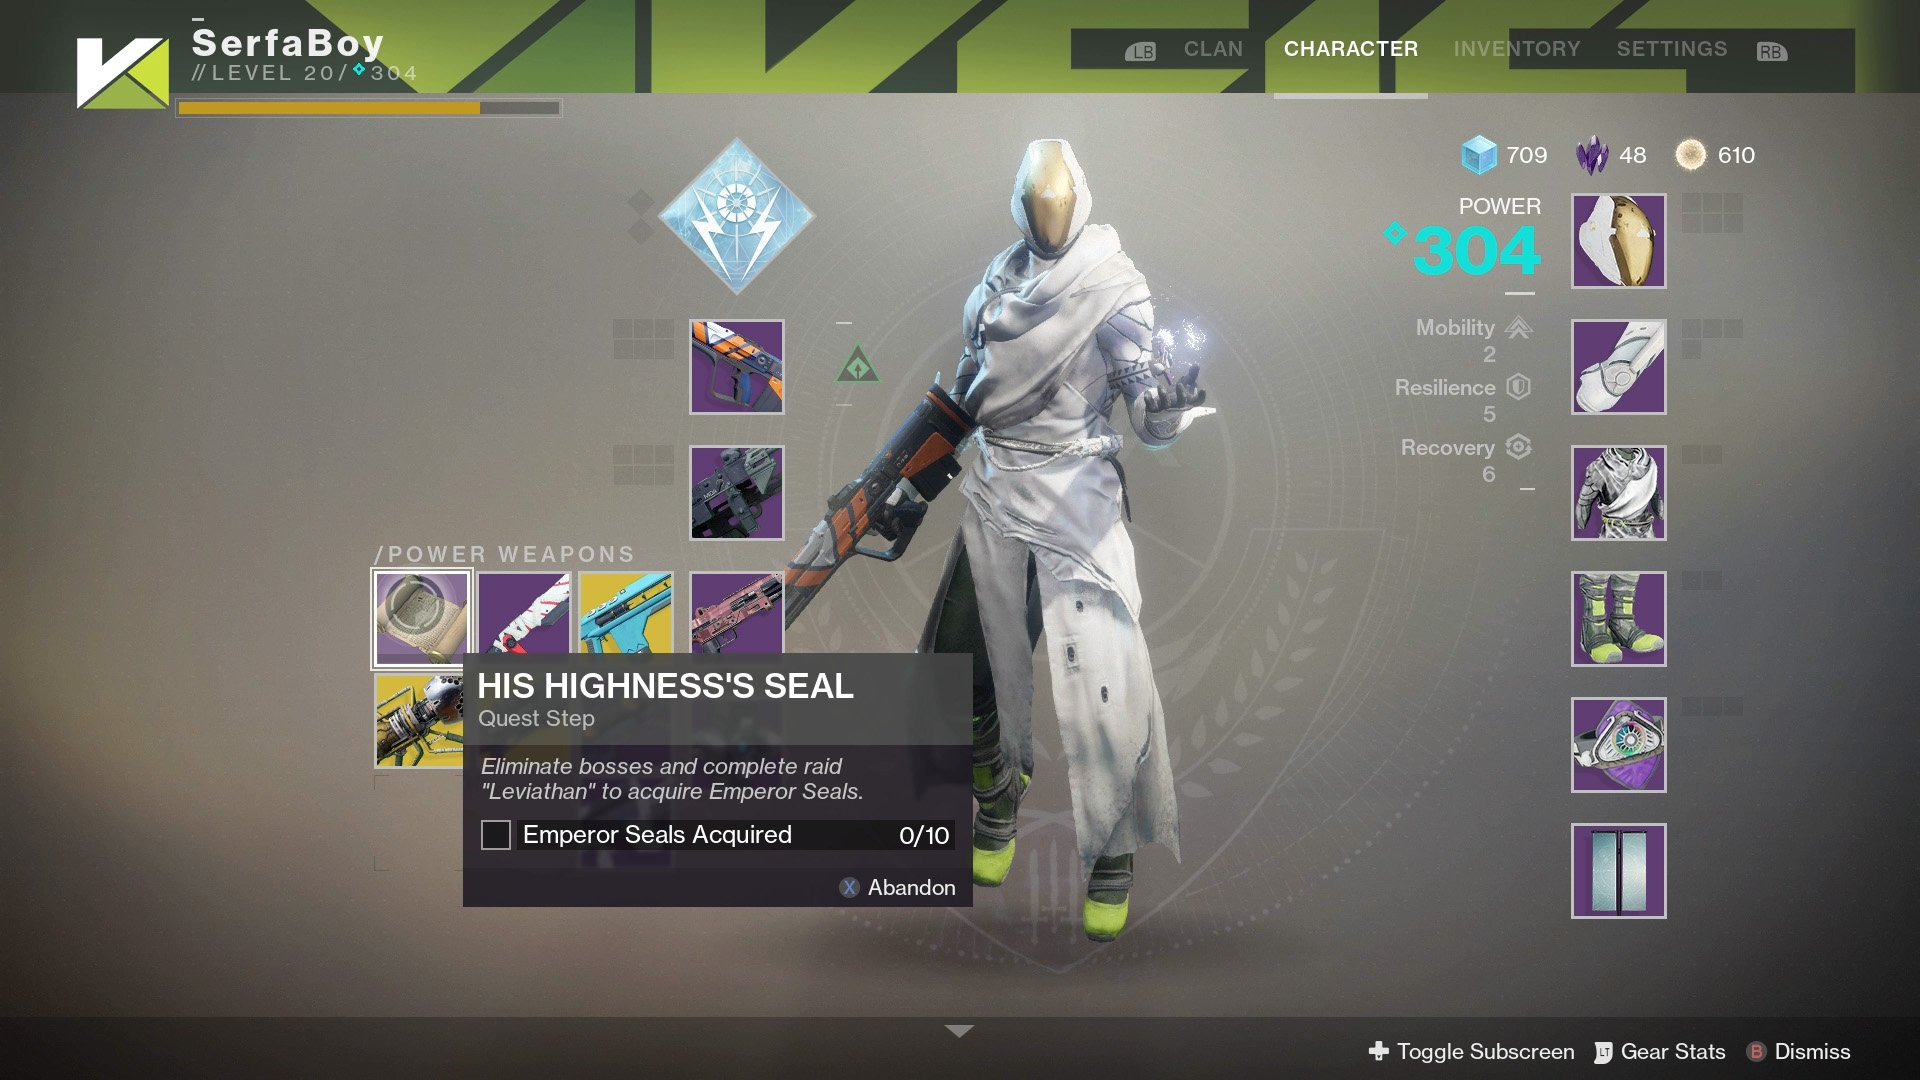 Out of all the Exotics weapons, only a few of them quests, of which none are particularly long or involved.